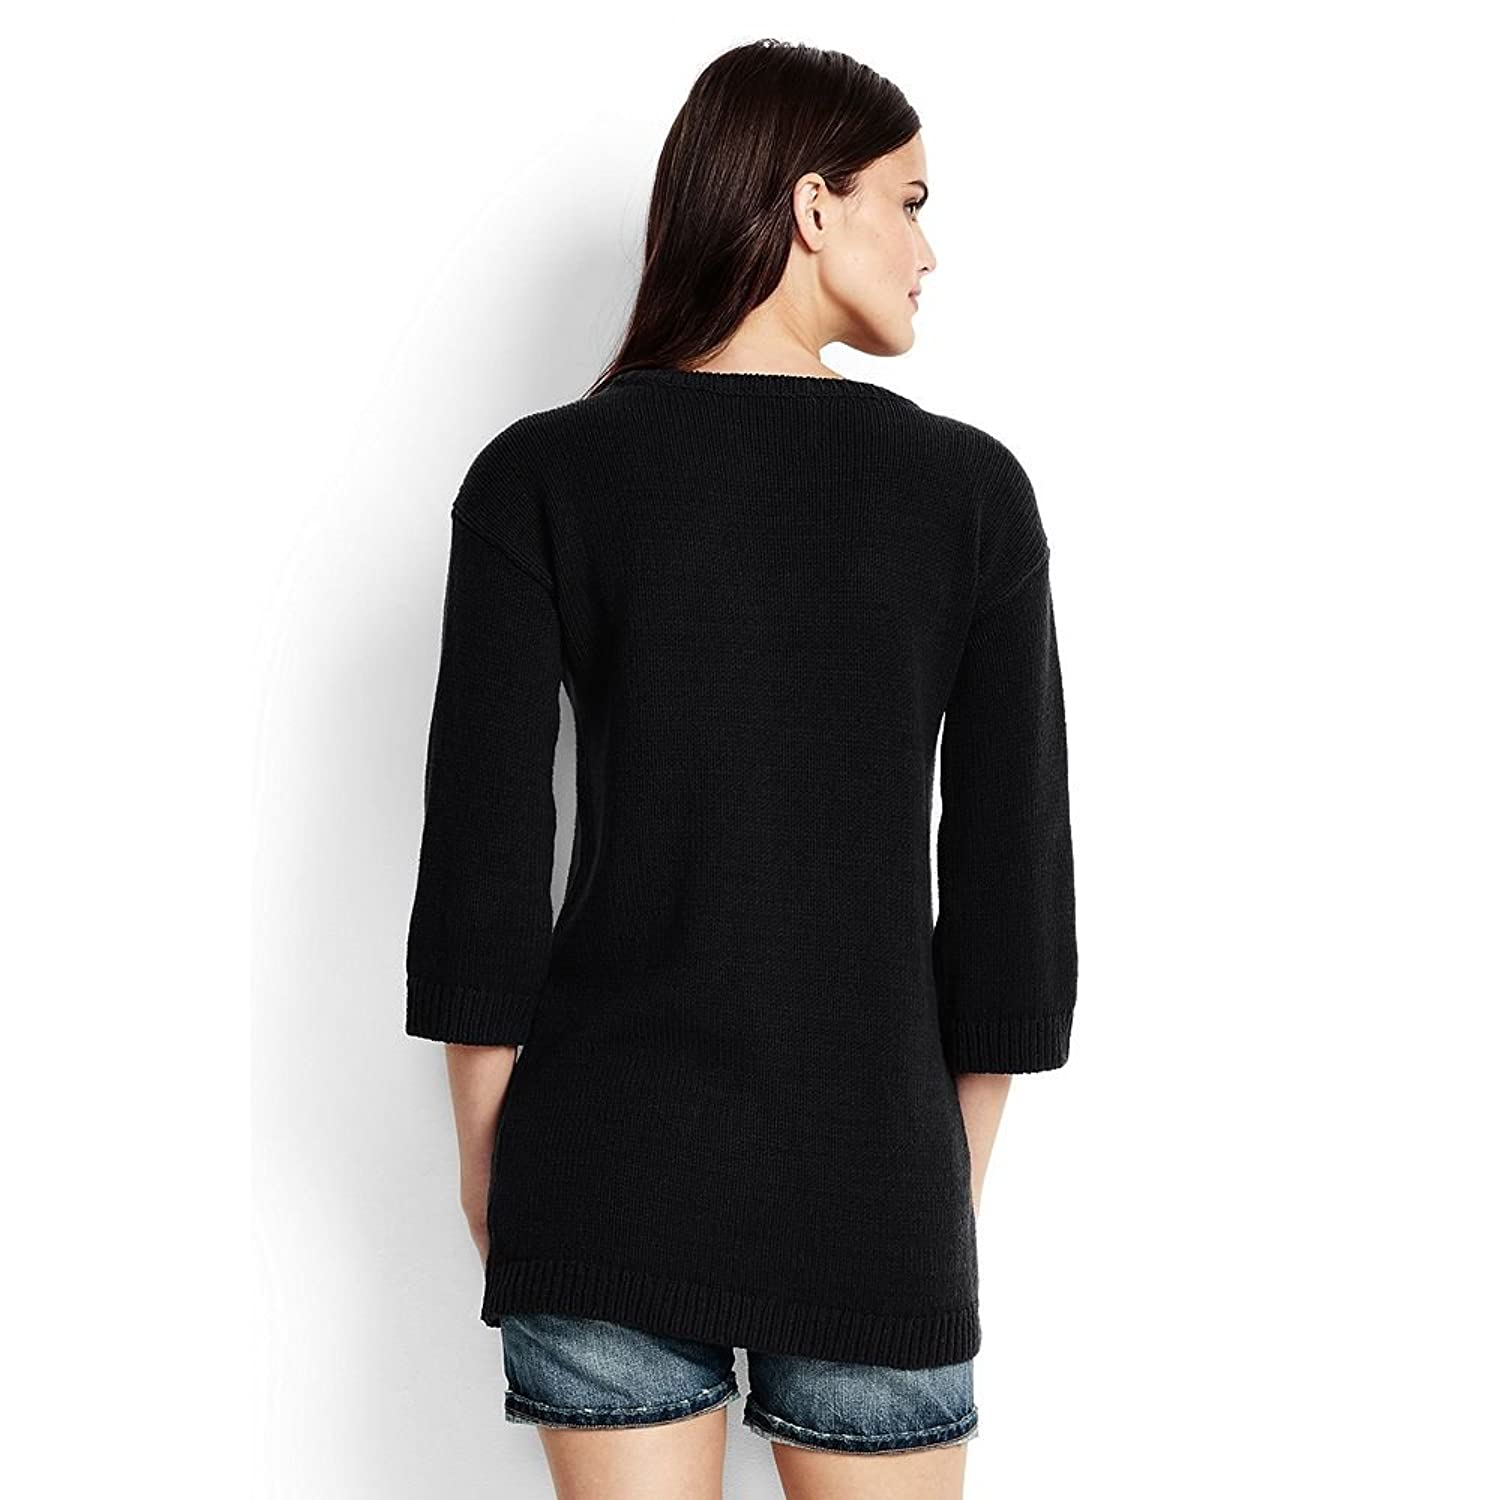 Canvas by Lands' End Women's Lofty Tunic Sweater, Black